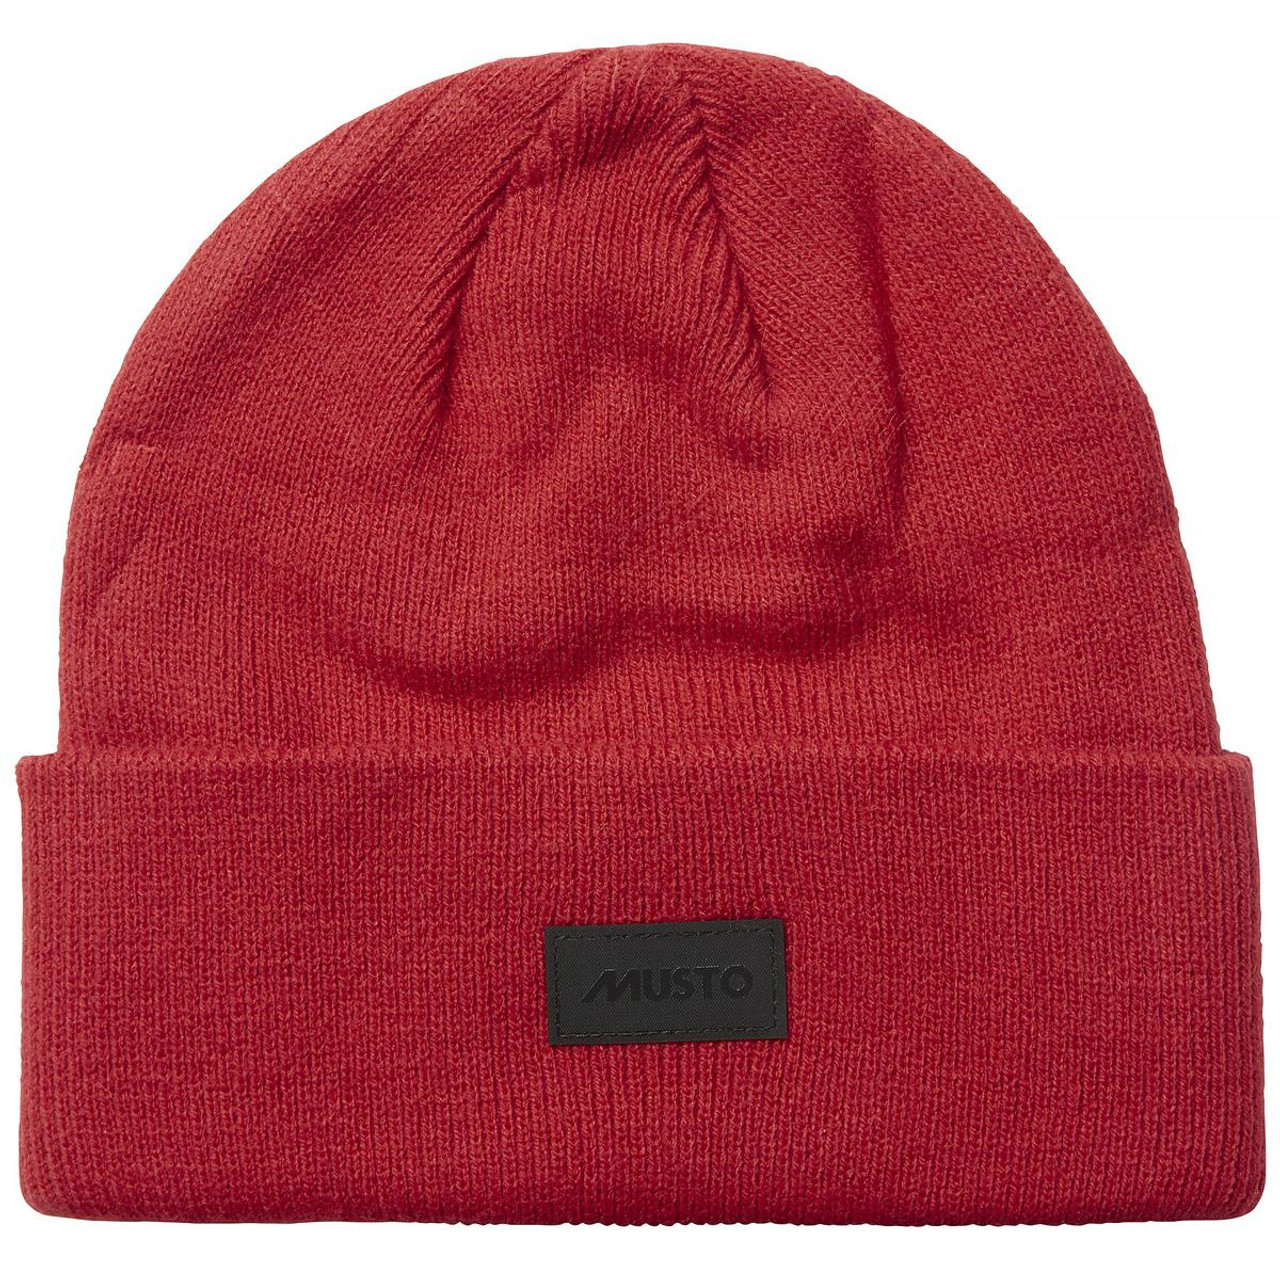 True Red Musto Shaker Cuff Beanie